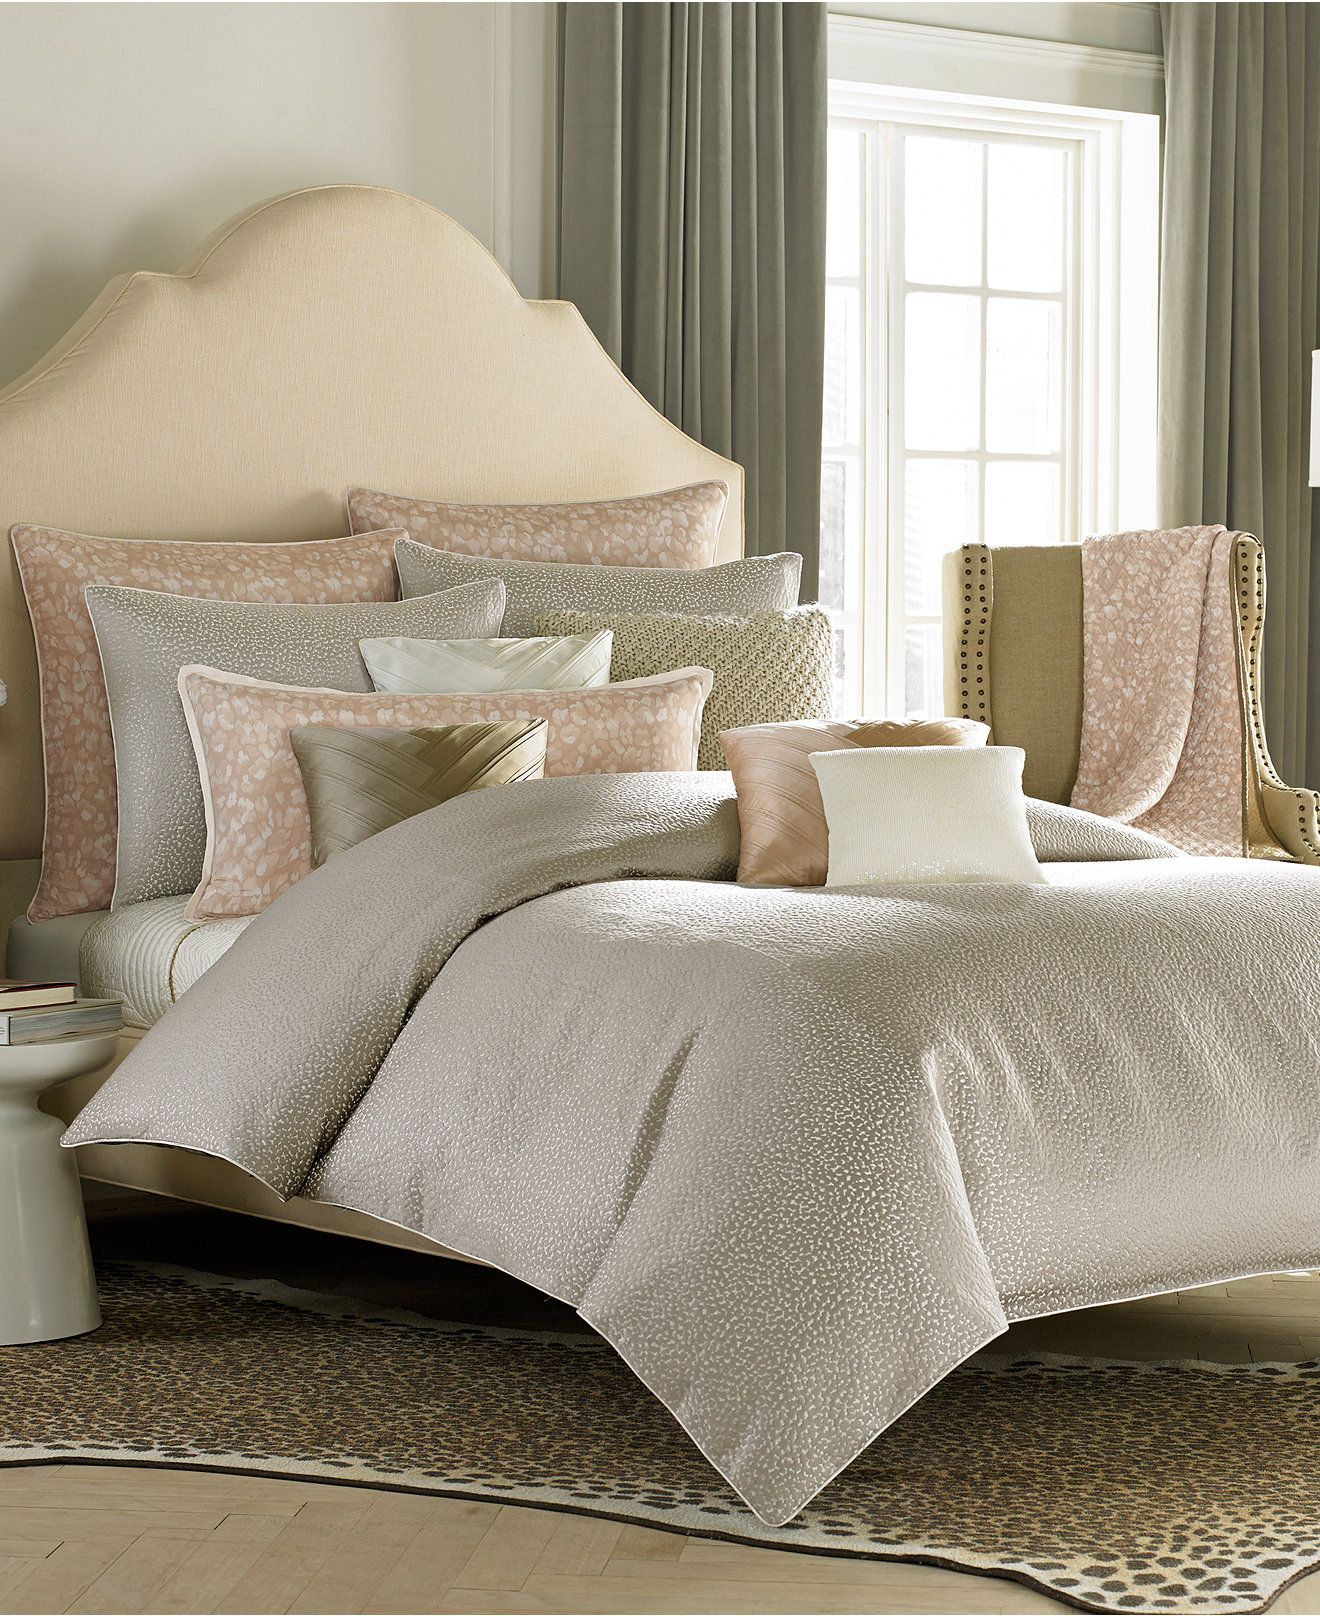 vince camuto home lisbon comforter sets  bedding collections  - vince camuto home lisbon comforter sets  bedding collections  bed  bath macy's